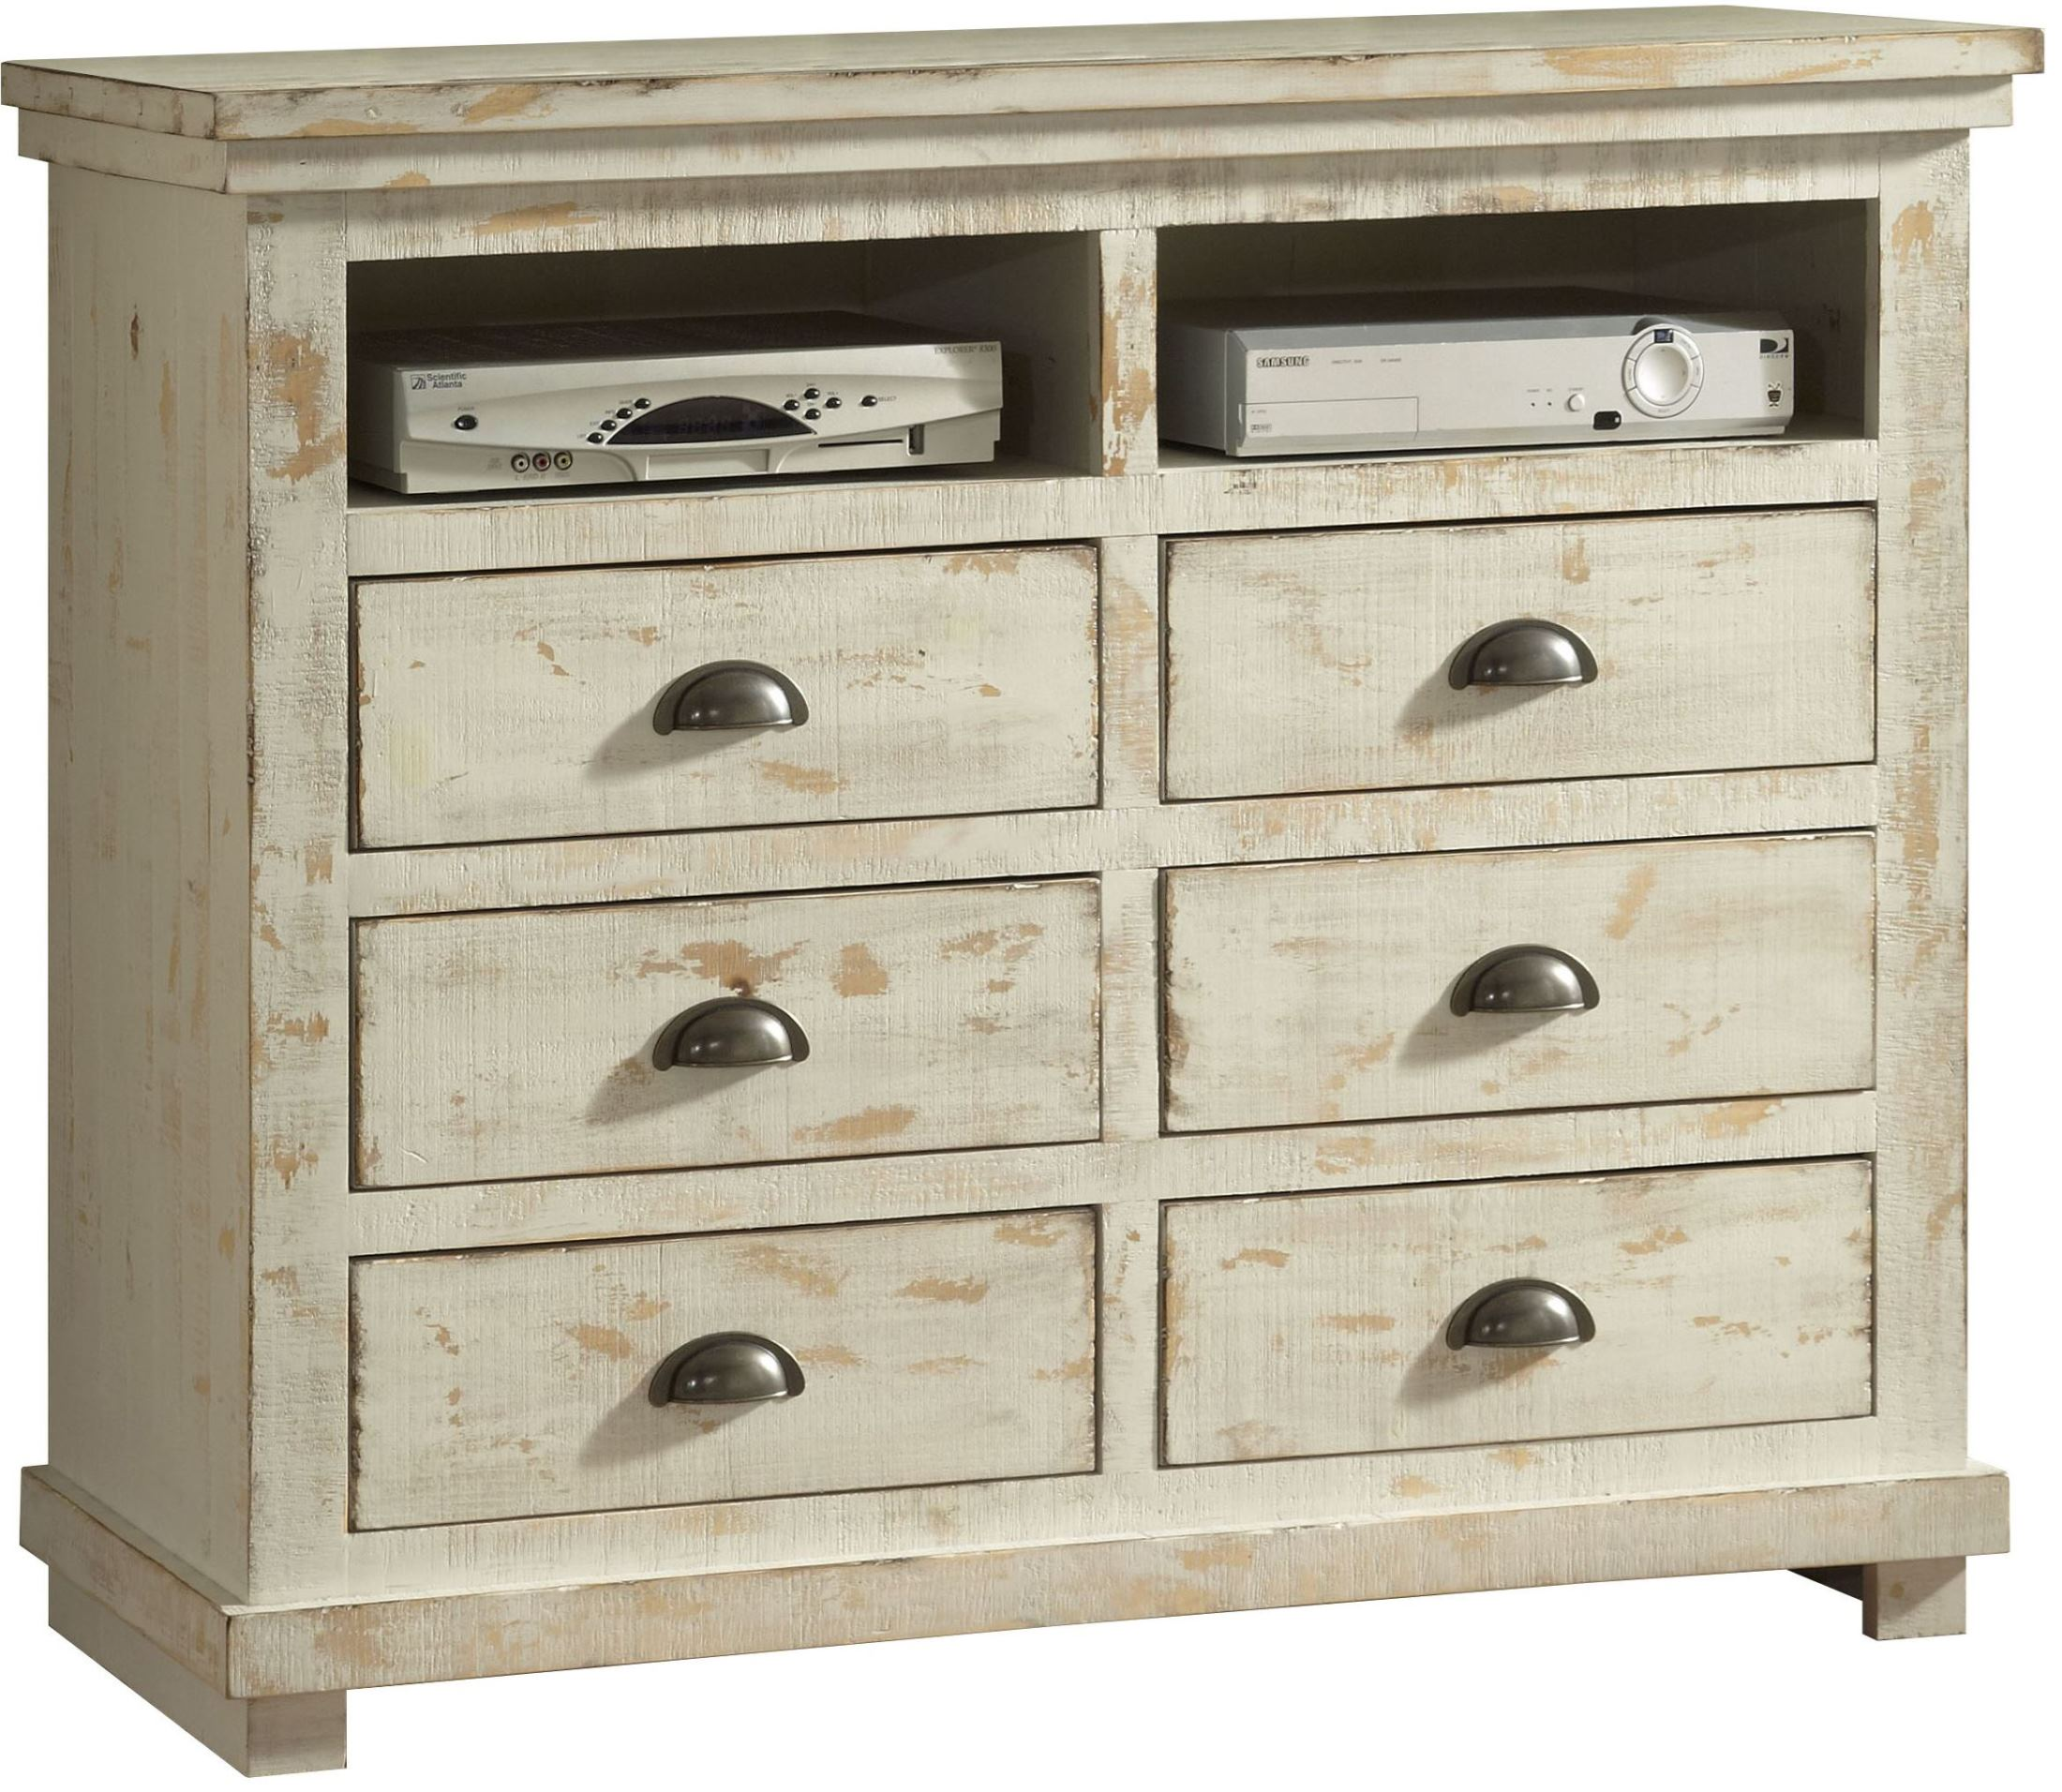 Progressive furniture willow distressed white media chest willow collection 14 reviews for White media chest for bedroom